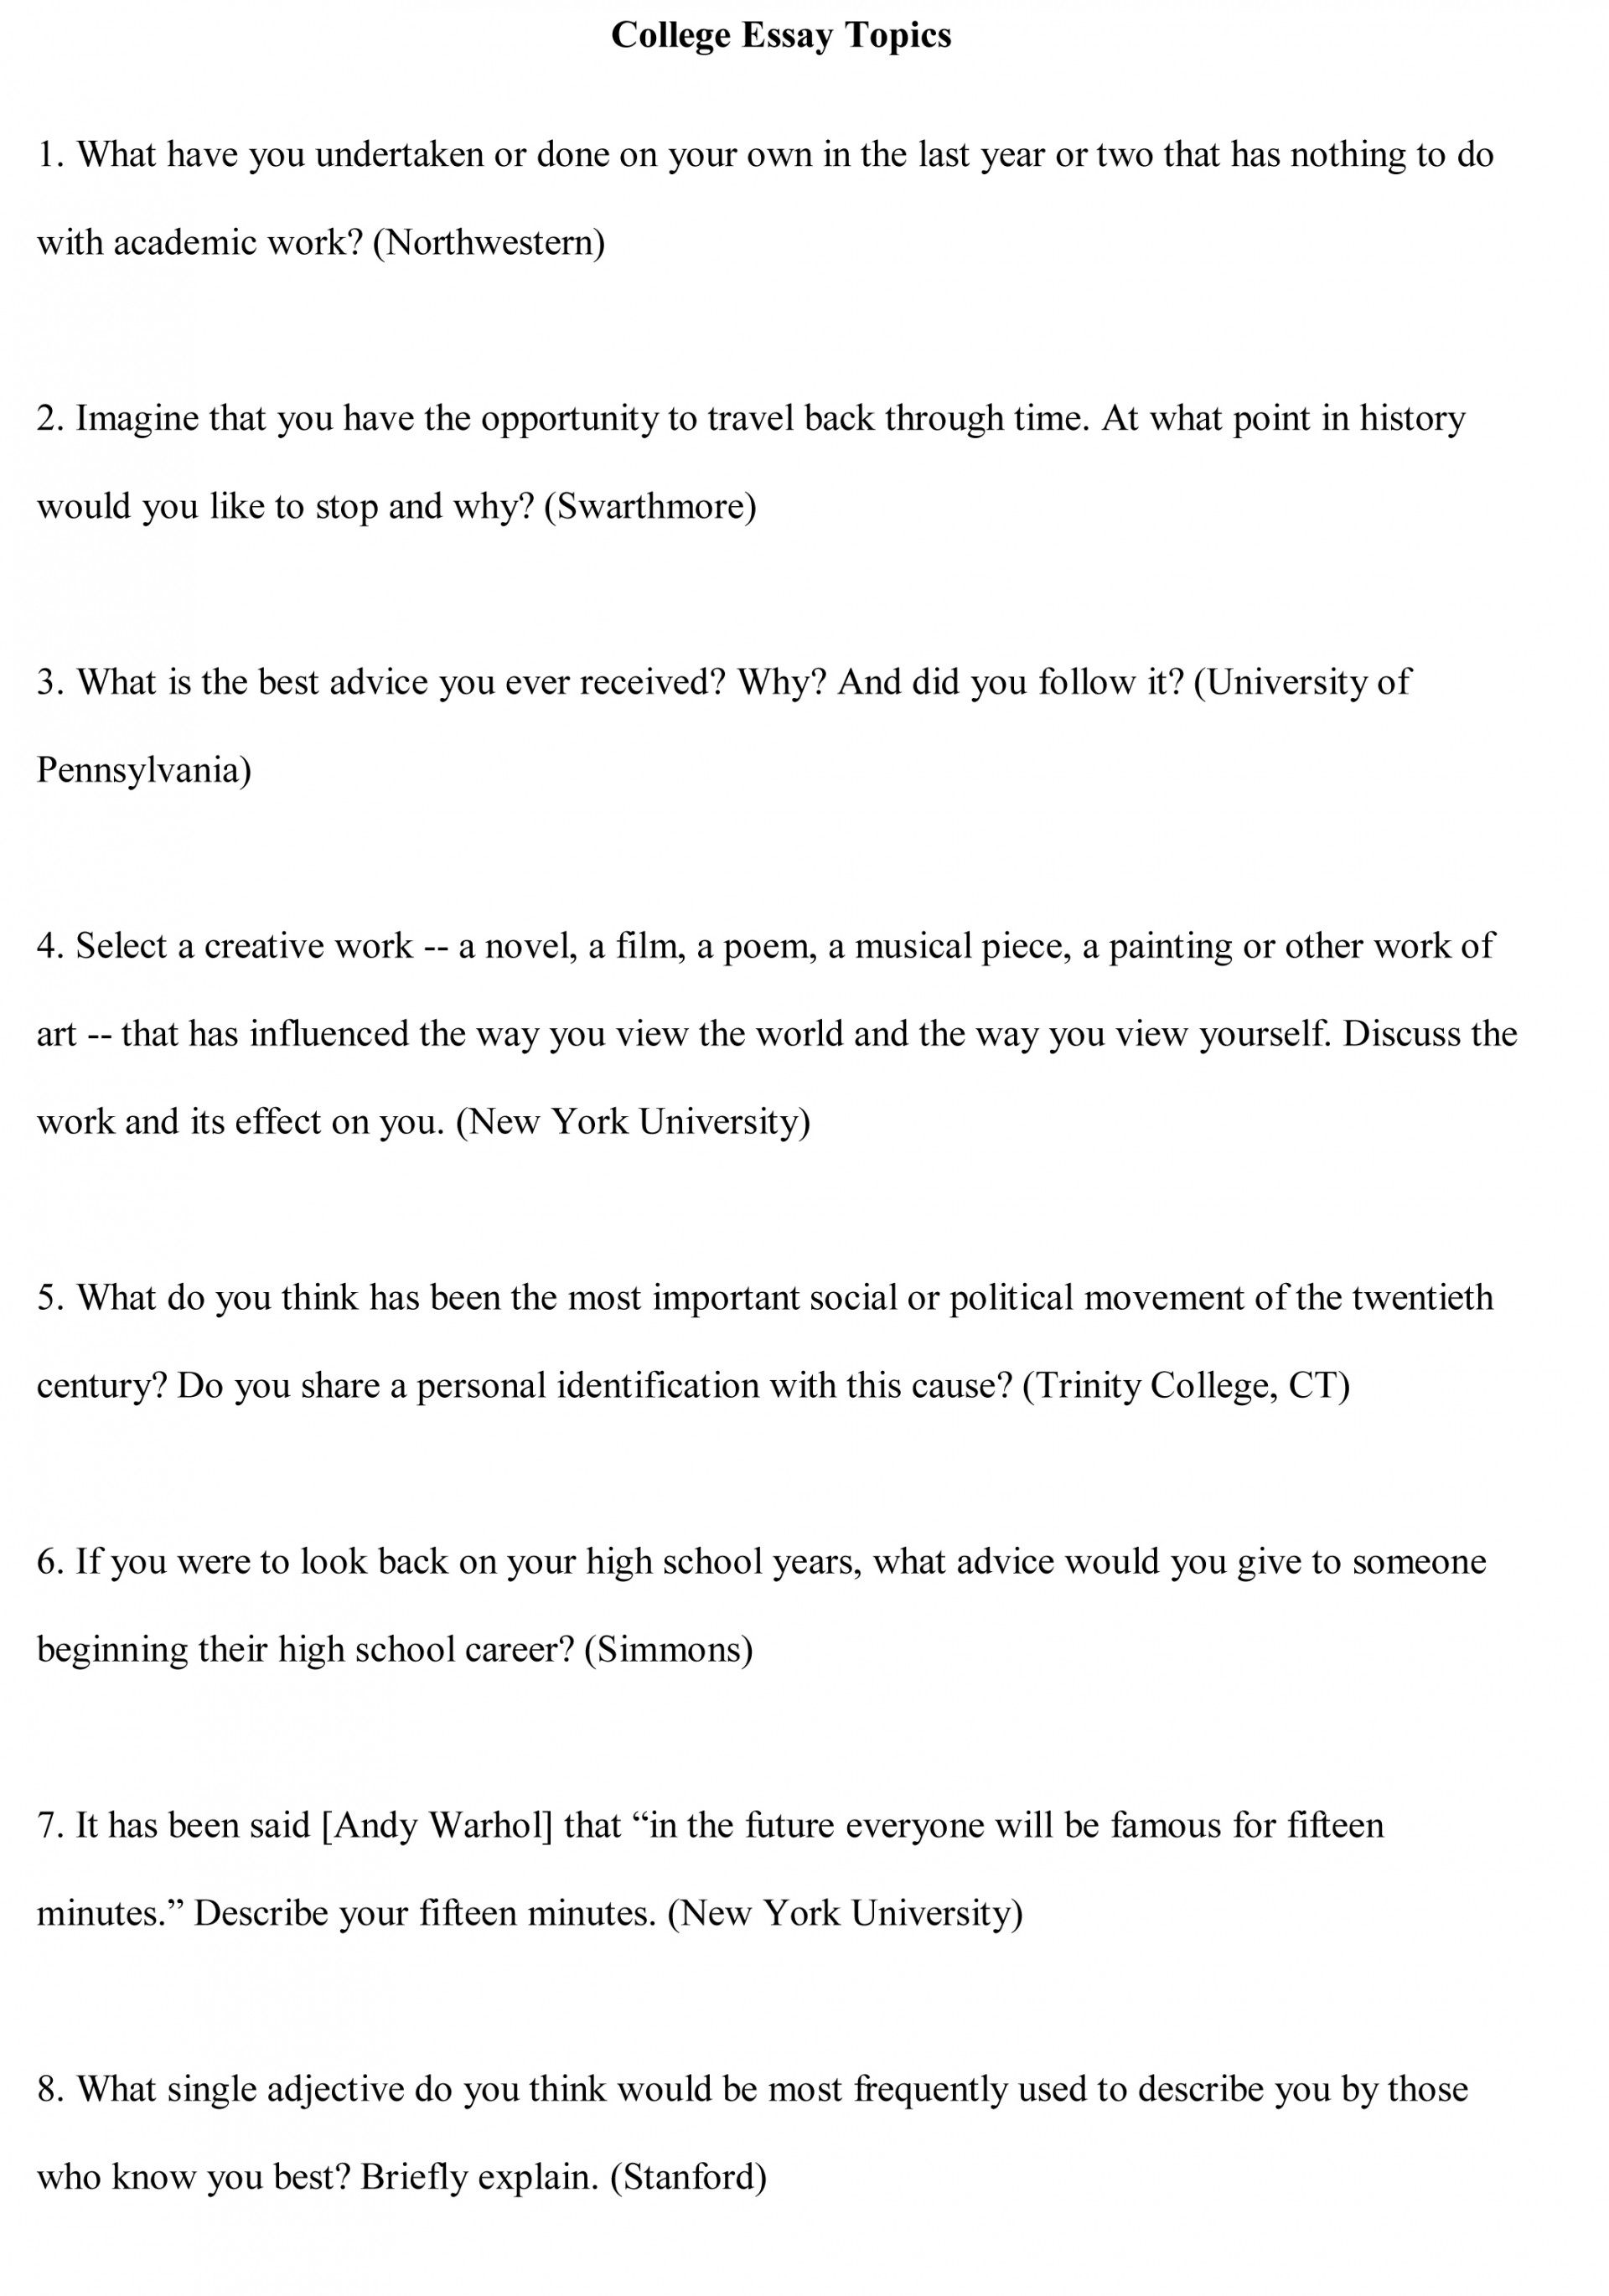 003 College Essay Topics Free Sample1 Prompts Impressive About Yourself Texas Tech 1920